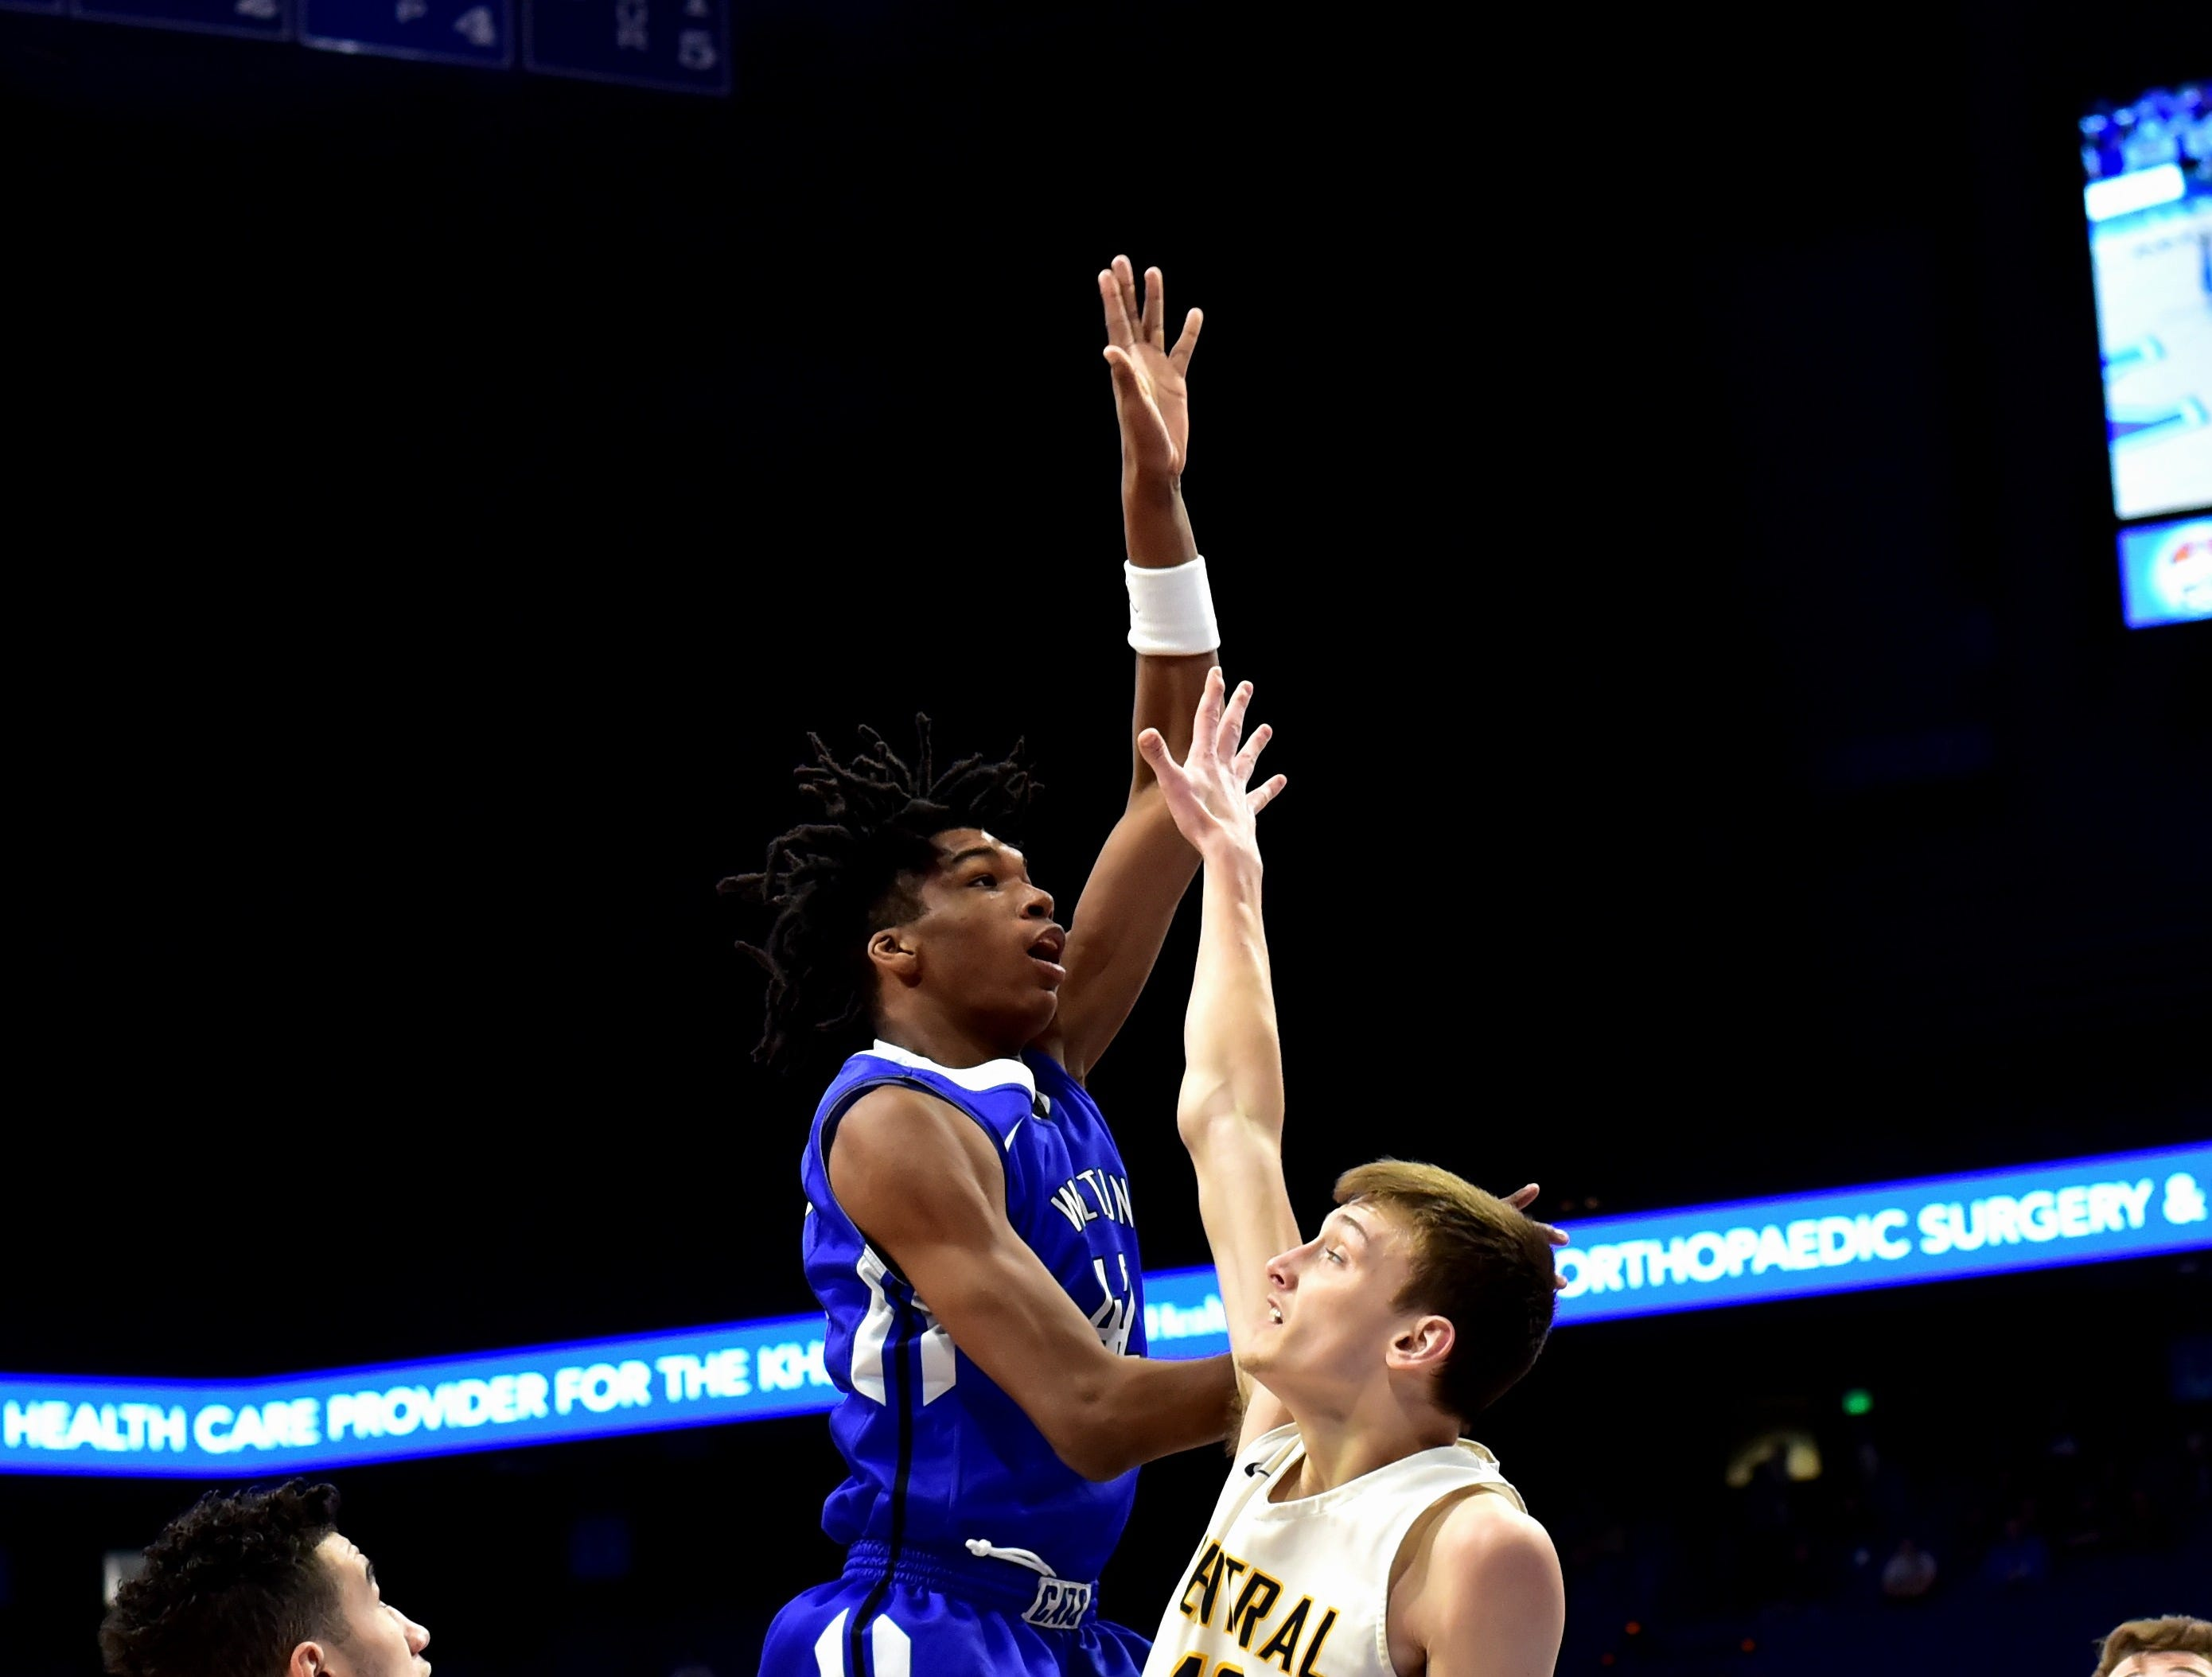 Walton Verona's Dieonte Miles drops home a one handed floater for the Bearcats at the KHSAA Sweet 16 Tournament at Rupp Arena in Lexington, KY, March 6, 2019